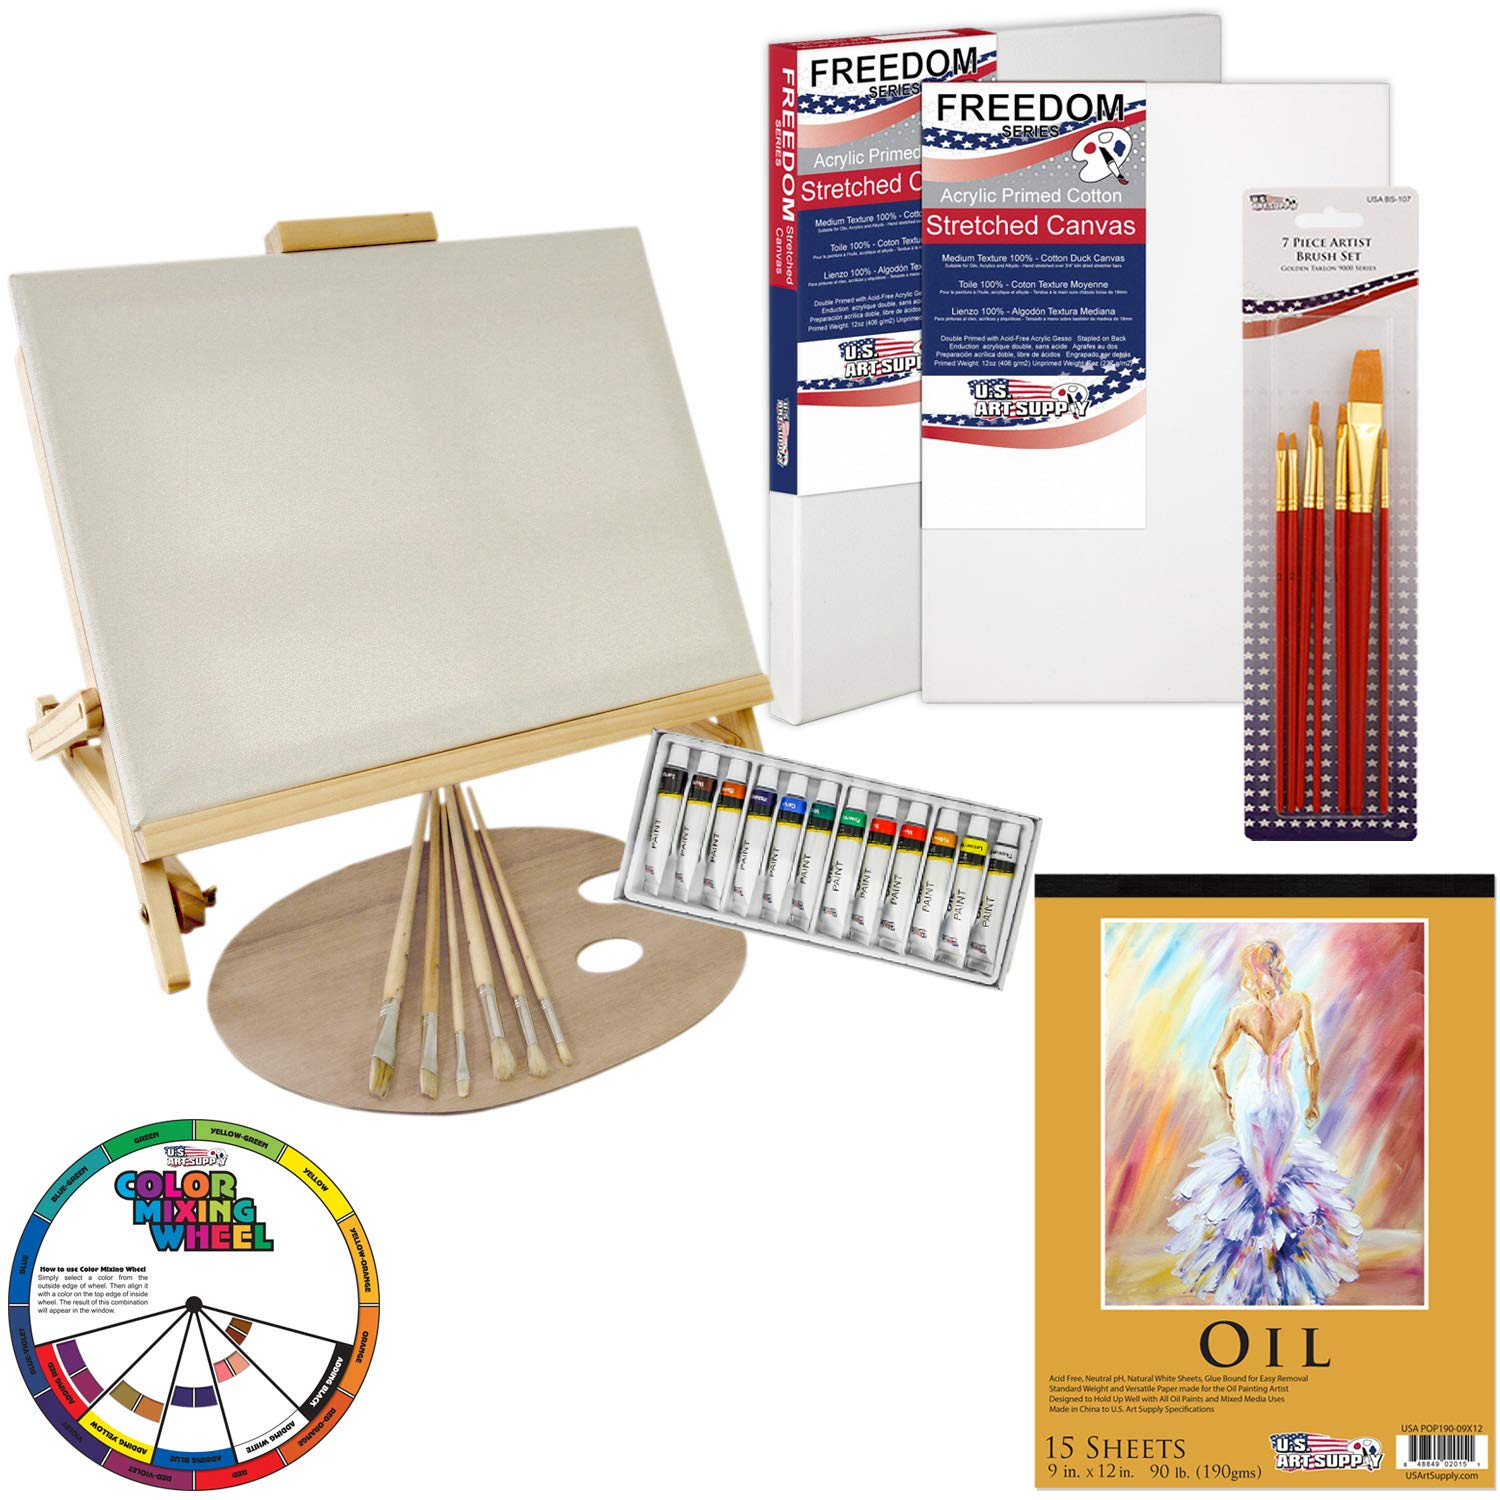 U.S. Art Supply 35-Piece Oil Painting Table Easel Set with, Oil Paint Colors, 11''x14'' Stretched Canvases, Oil Painting Paper Pad, 16 Artist Brushes, Wooden Palette & Now Includes a Color Mixing Wheel by US Art Supply